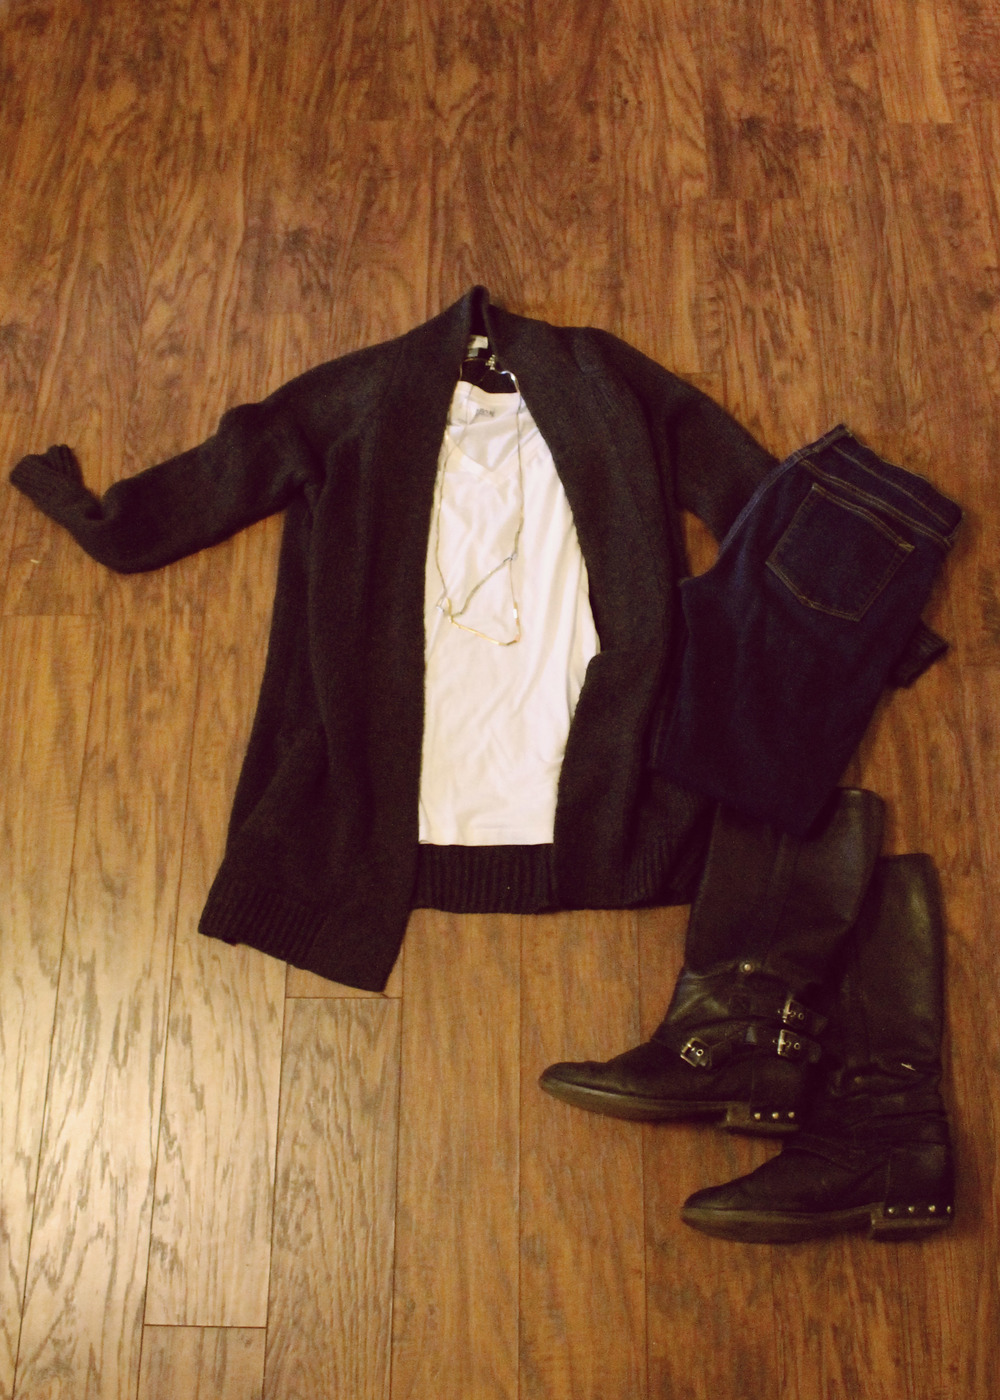 Gray Knit Cardigan, Jeans, Boots